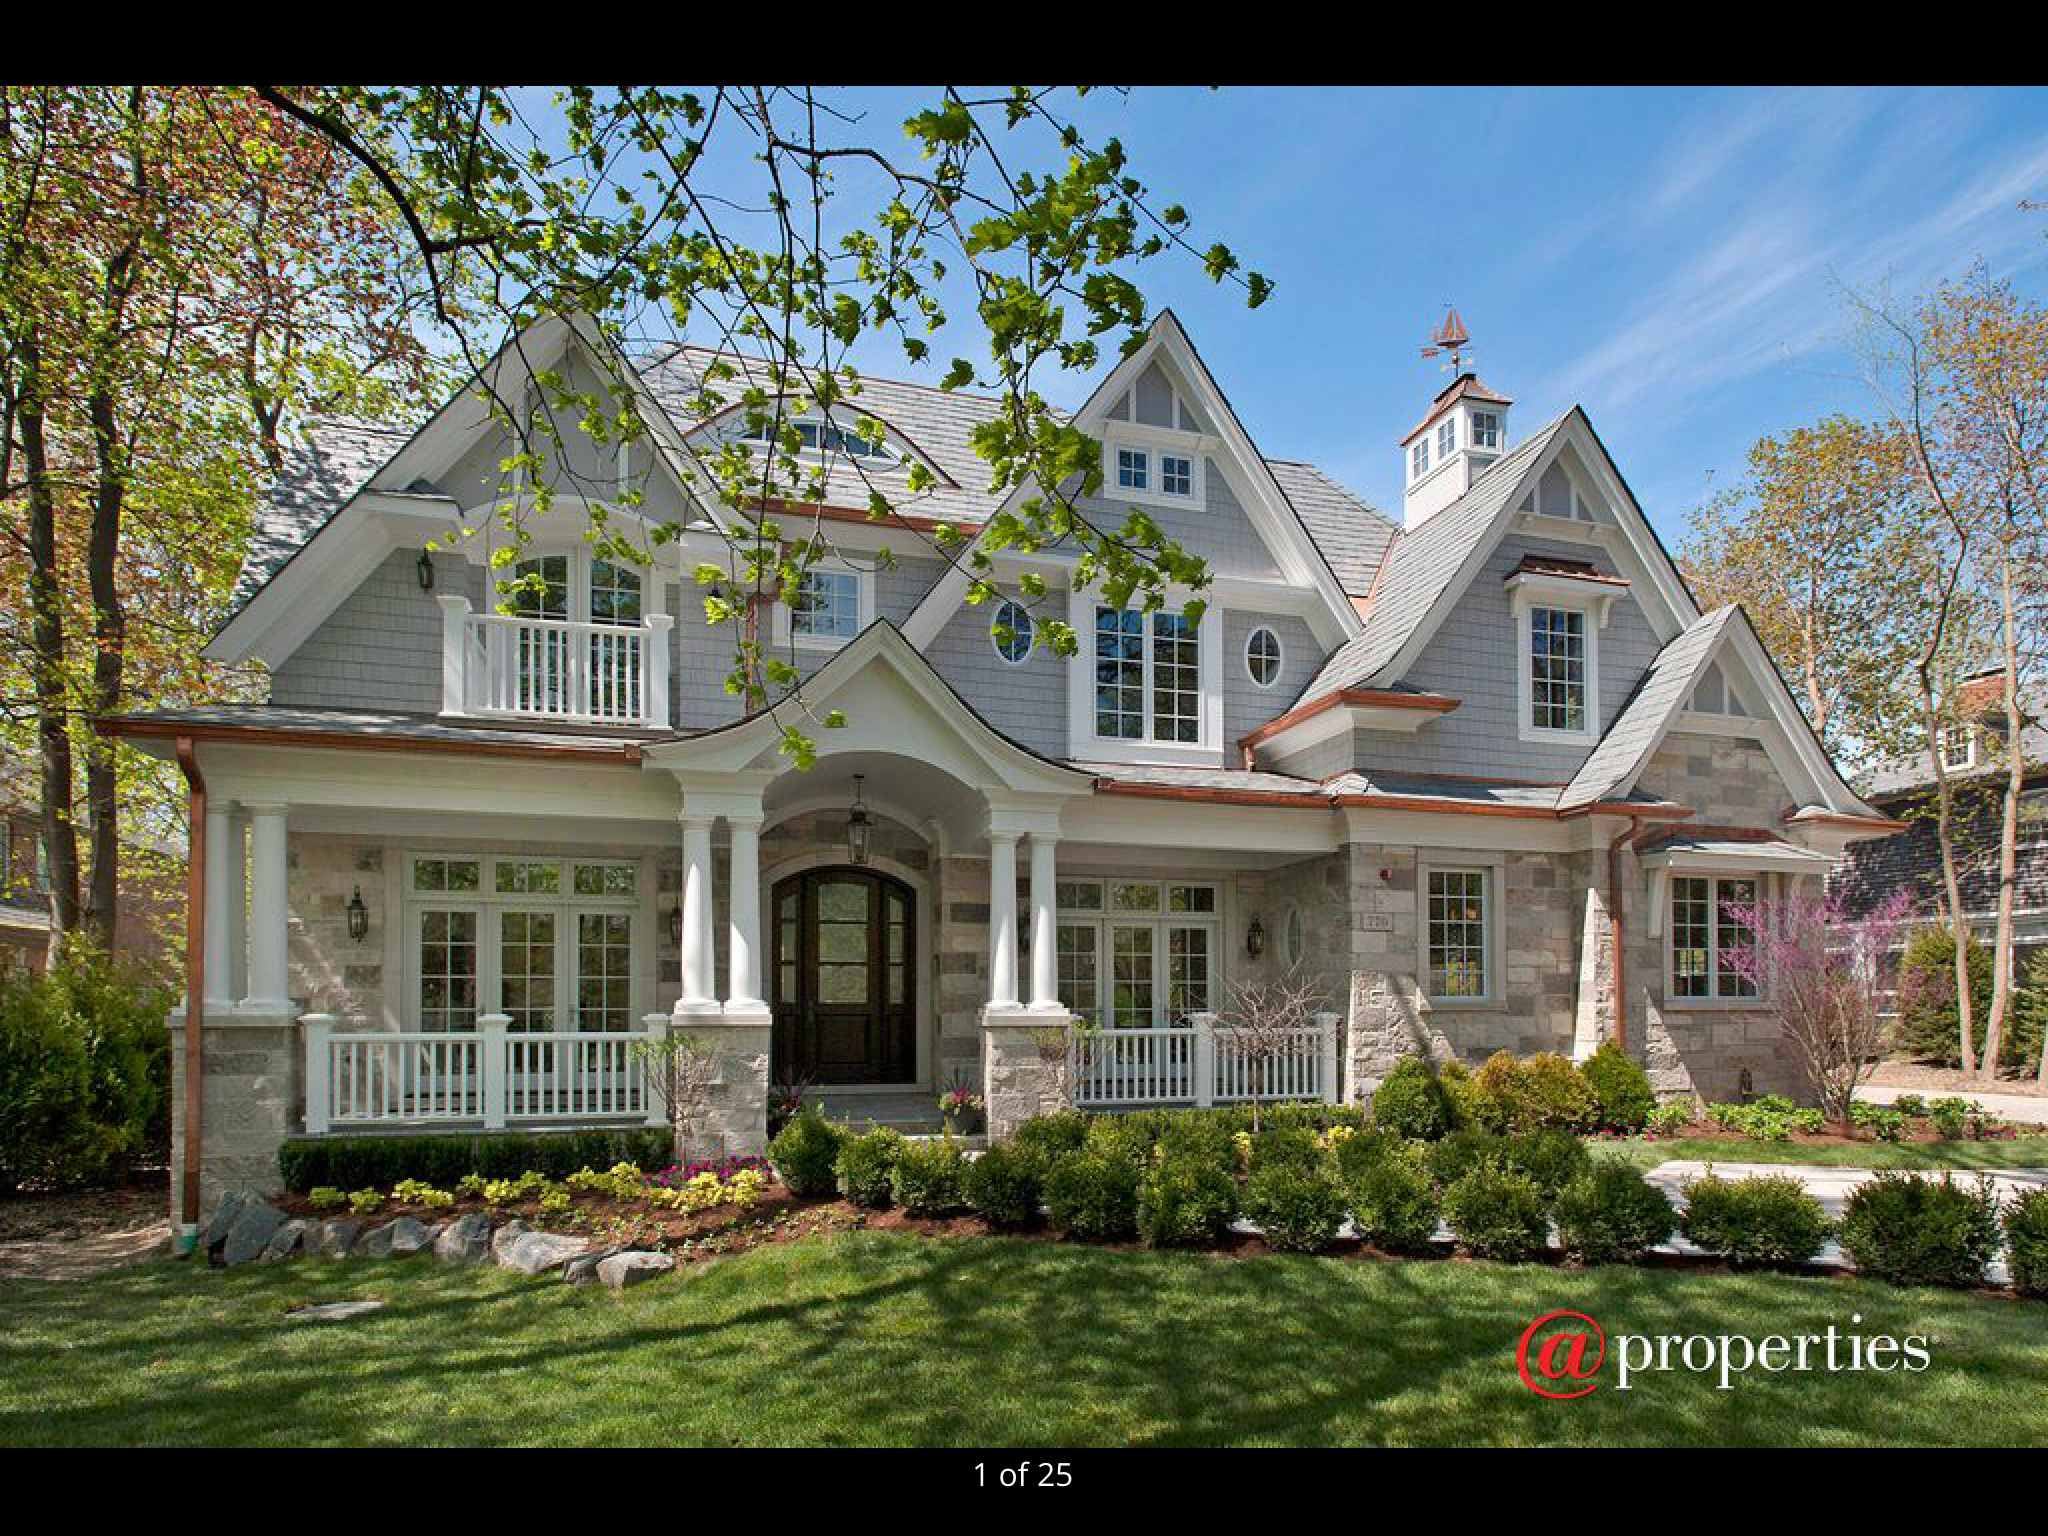 Pin By Gayle Fons On Mockingbird Nantucket Style Homes House Exterior Nantucket Home